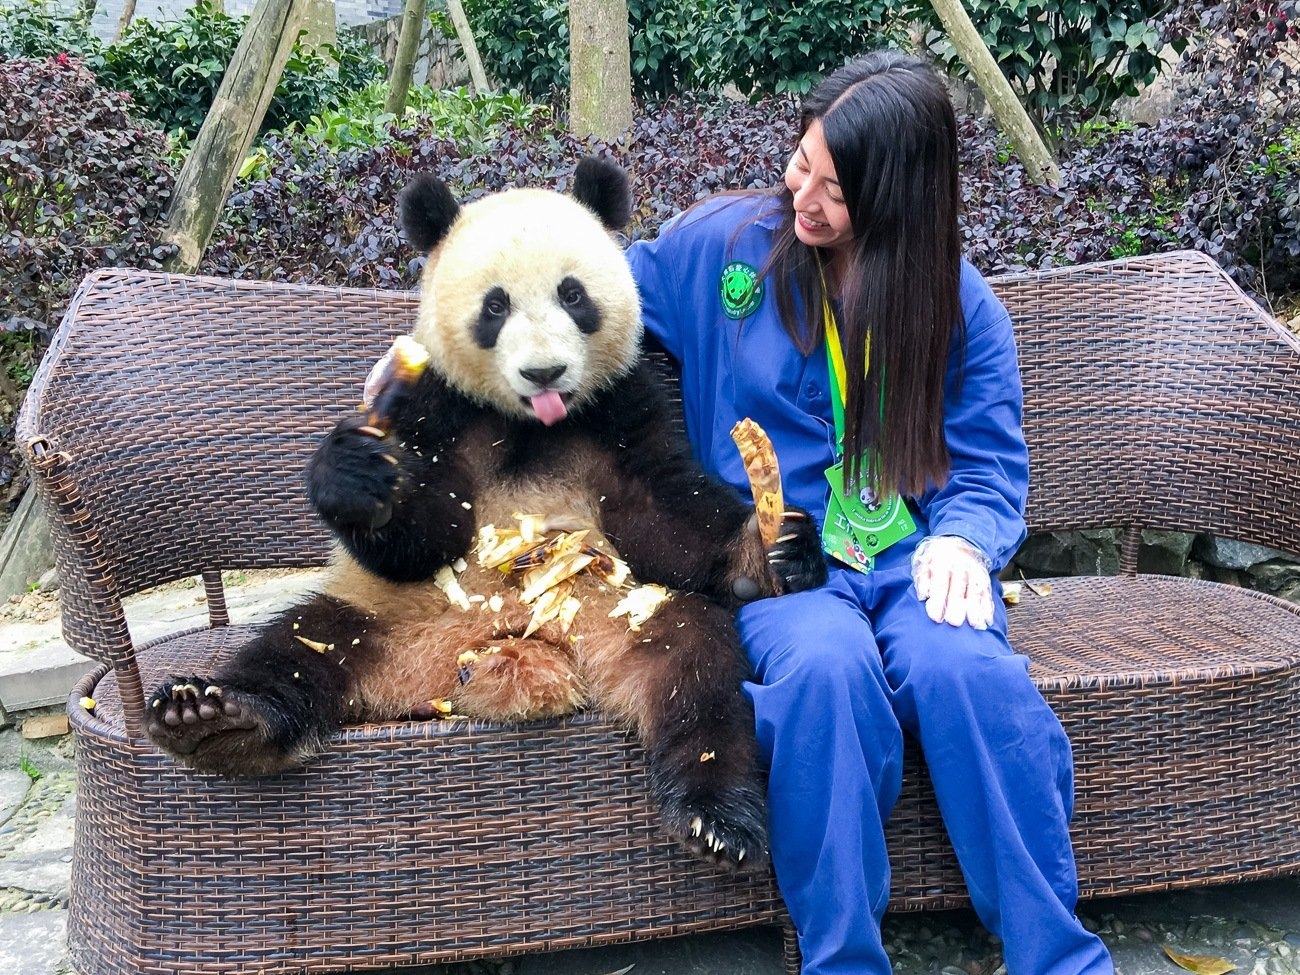 You can take a photo with a panda at Dujiangyan Panda Base in China.